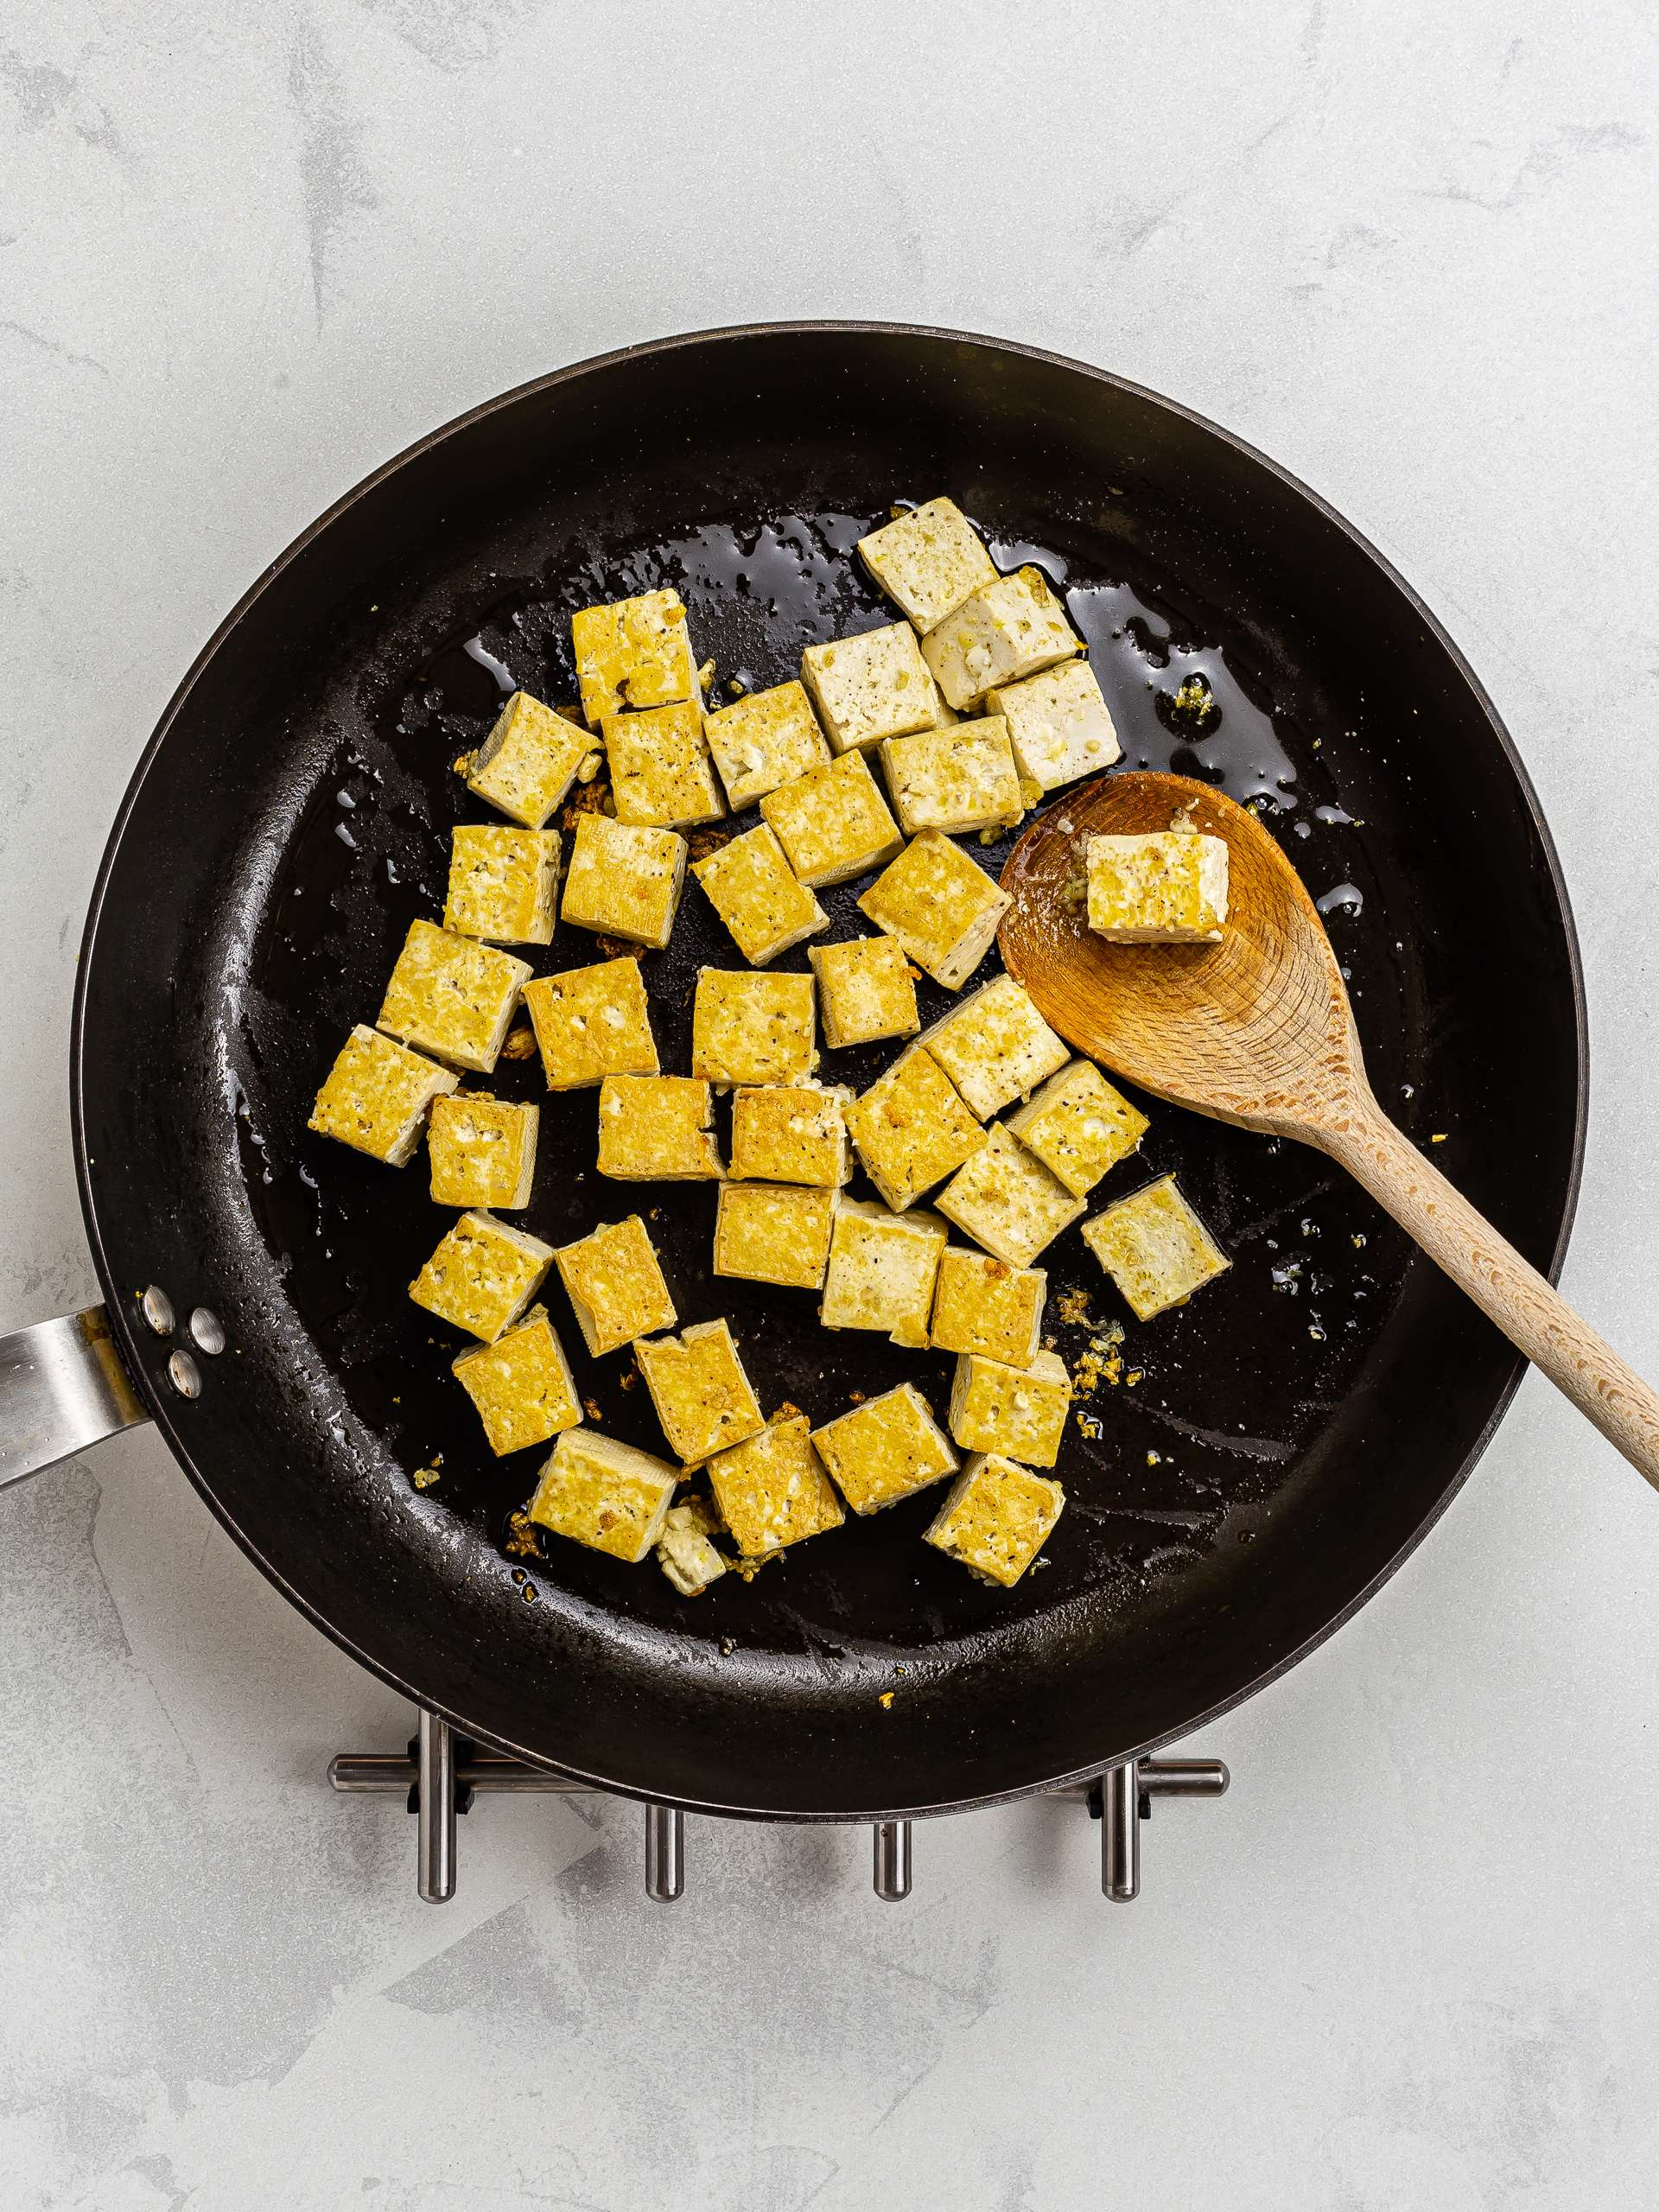 sizzled tofu in a skillet